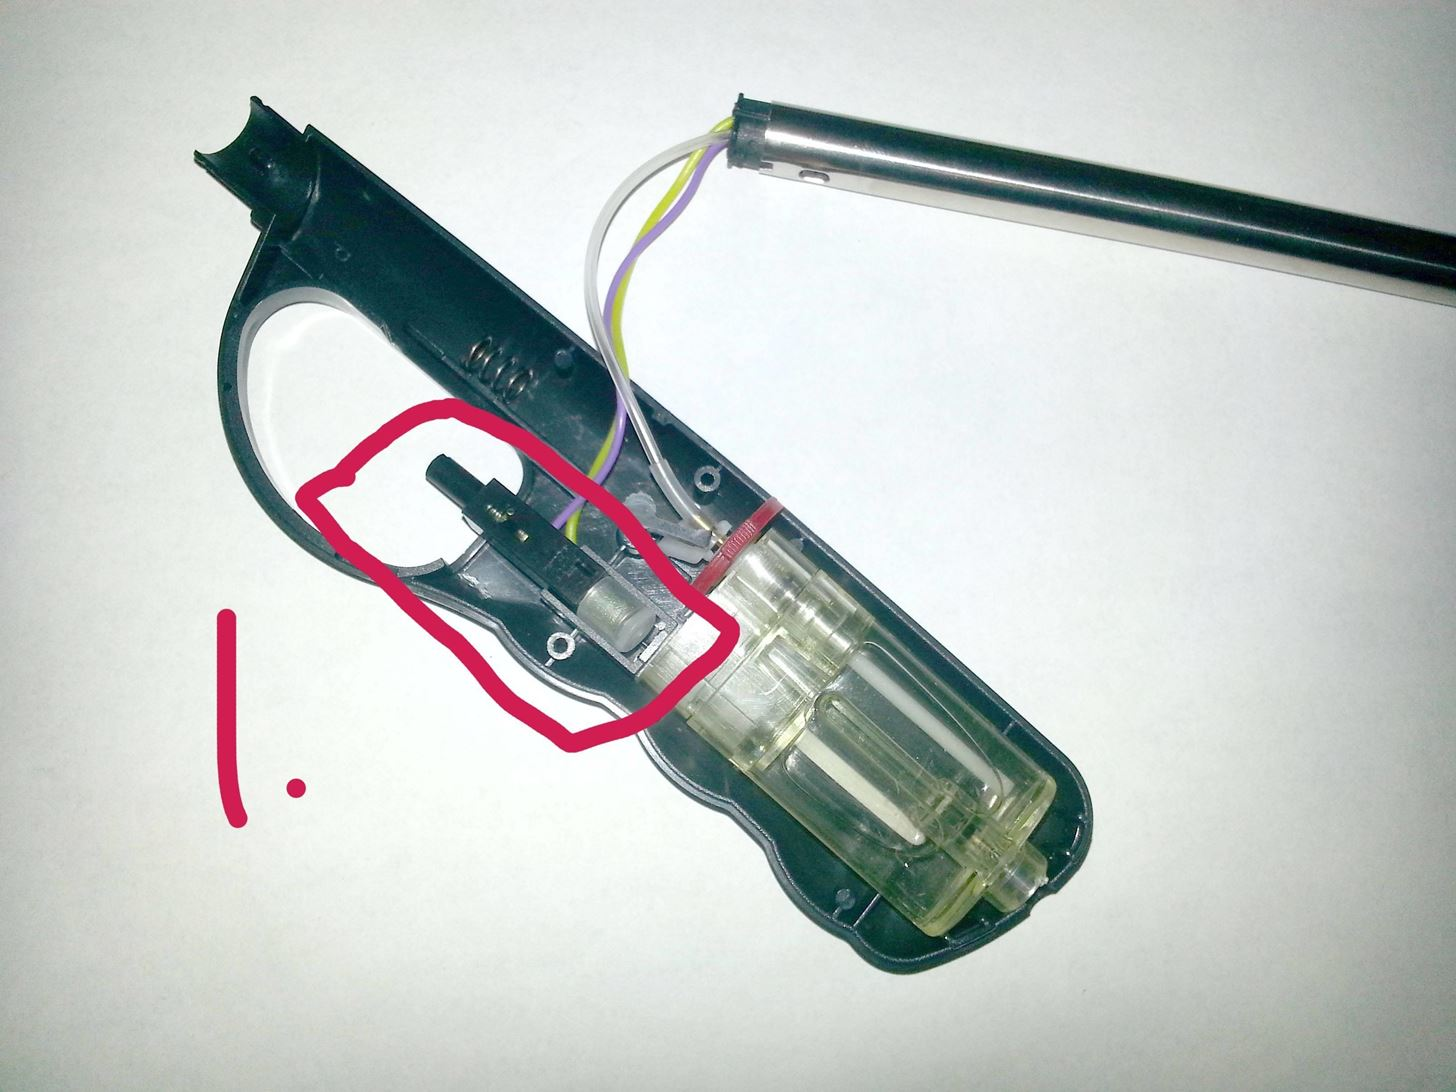 DIY 5-Minute $2 Dollar Taser